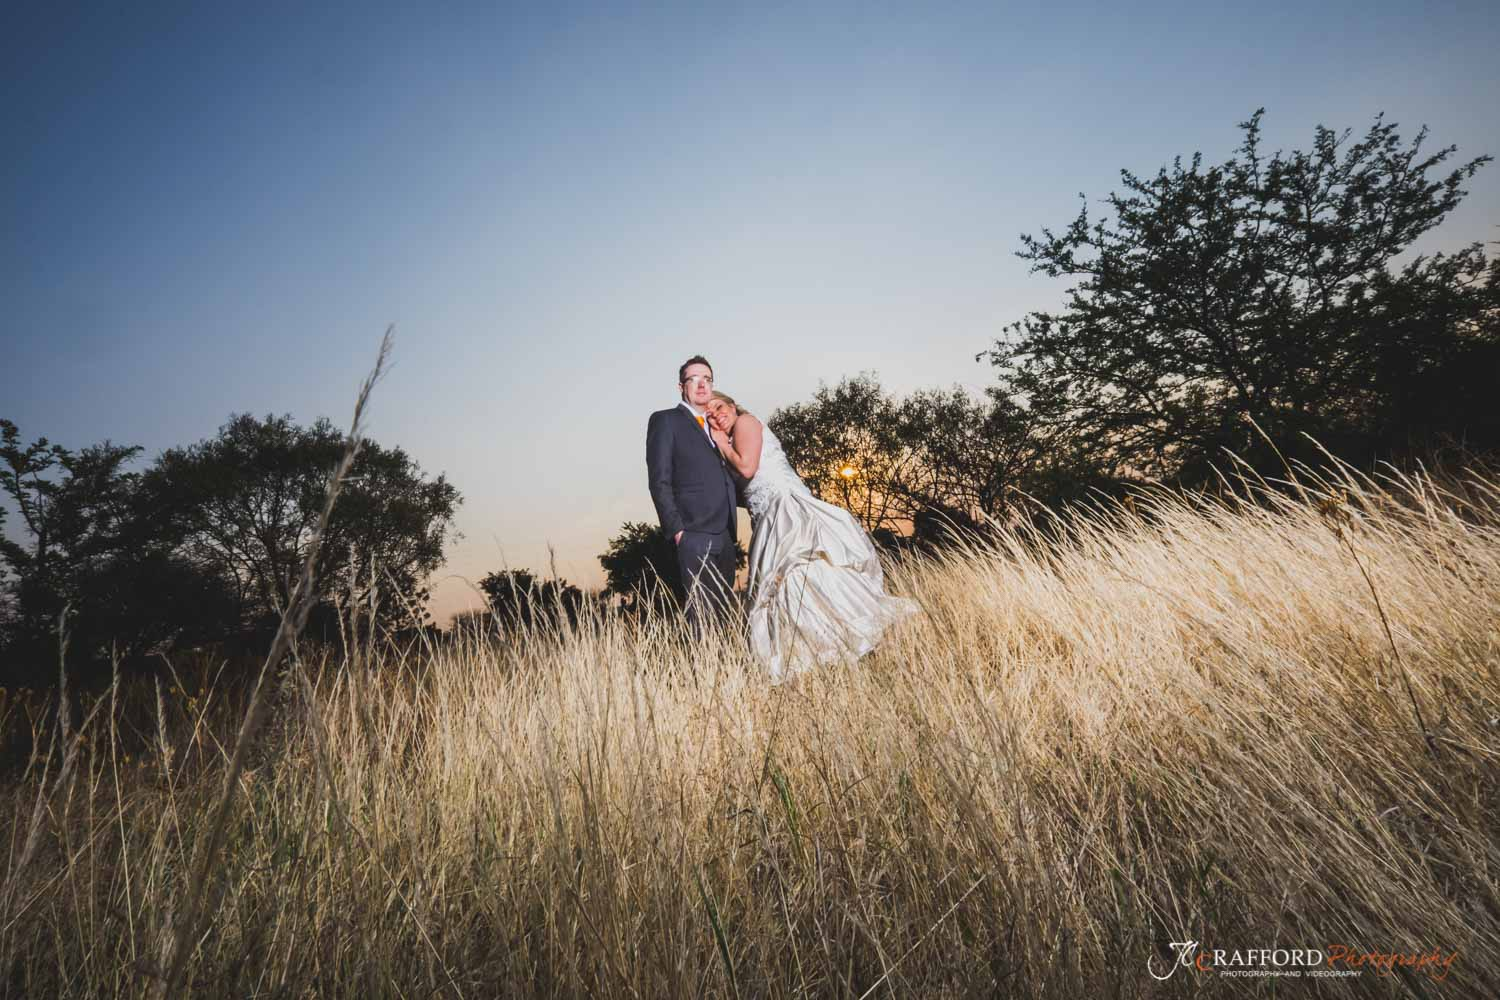 JC Crafford wedding photography at Zambezi Point in Pretoria - ZT